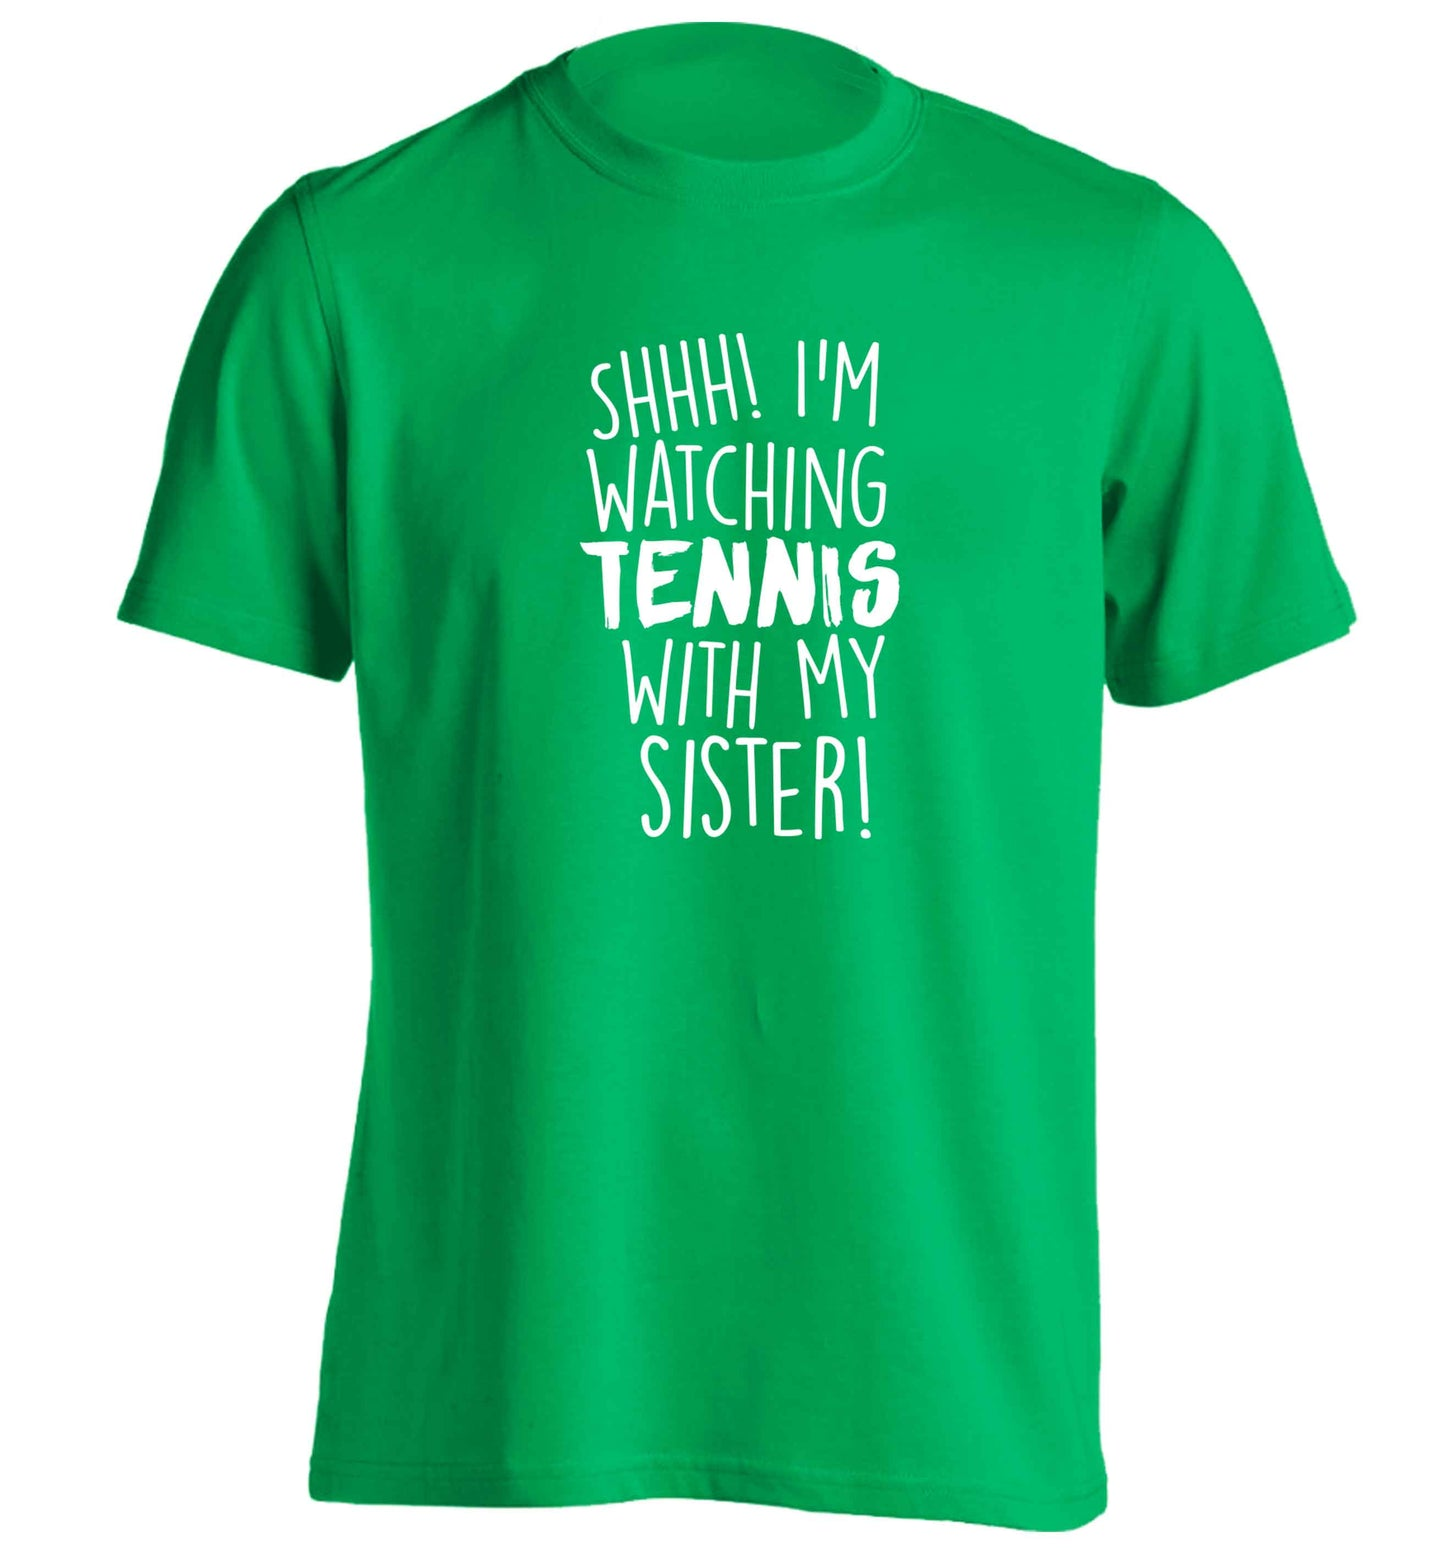 Shh! I'm watching tennis with my sister! adults unisex green Tshirt 2XL